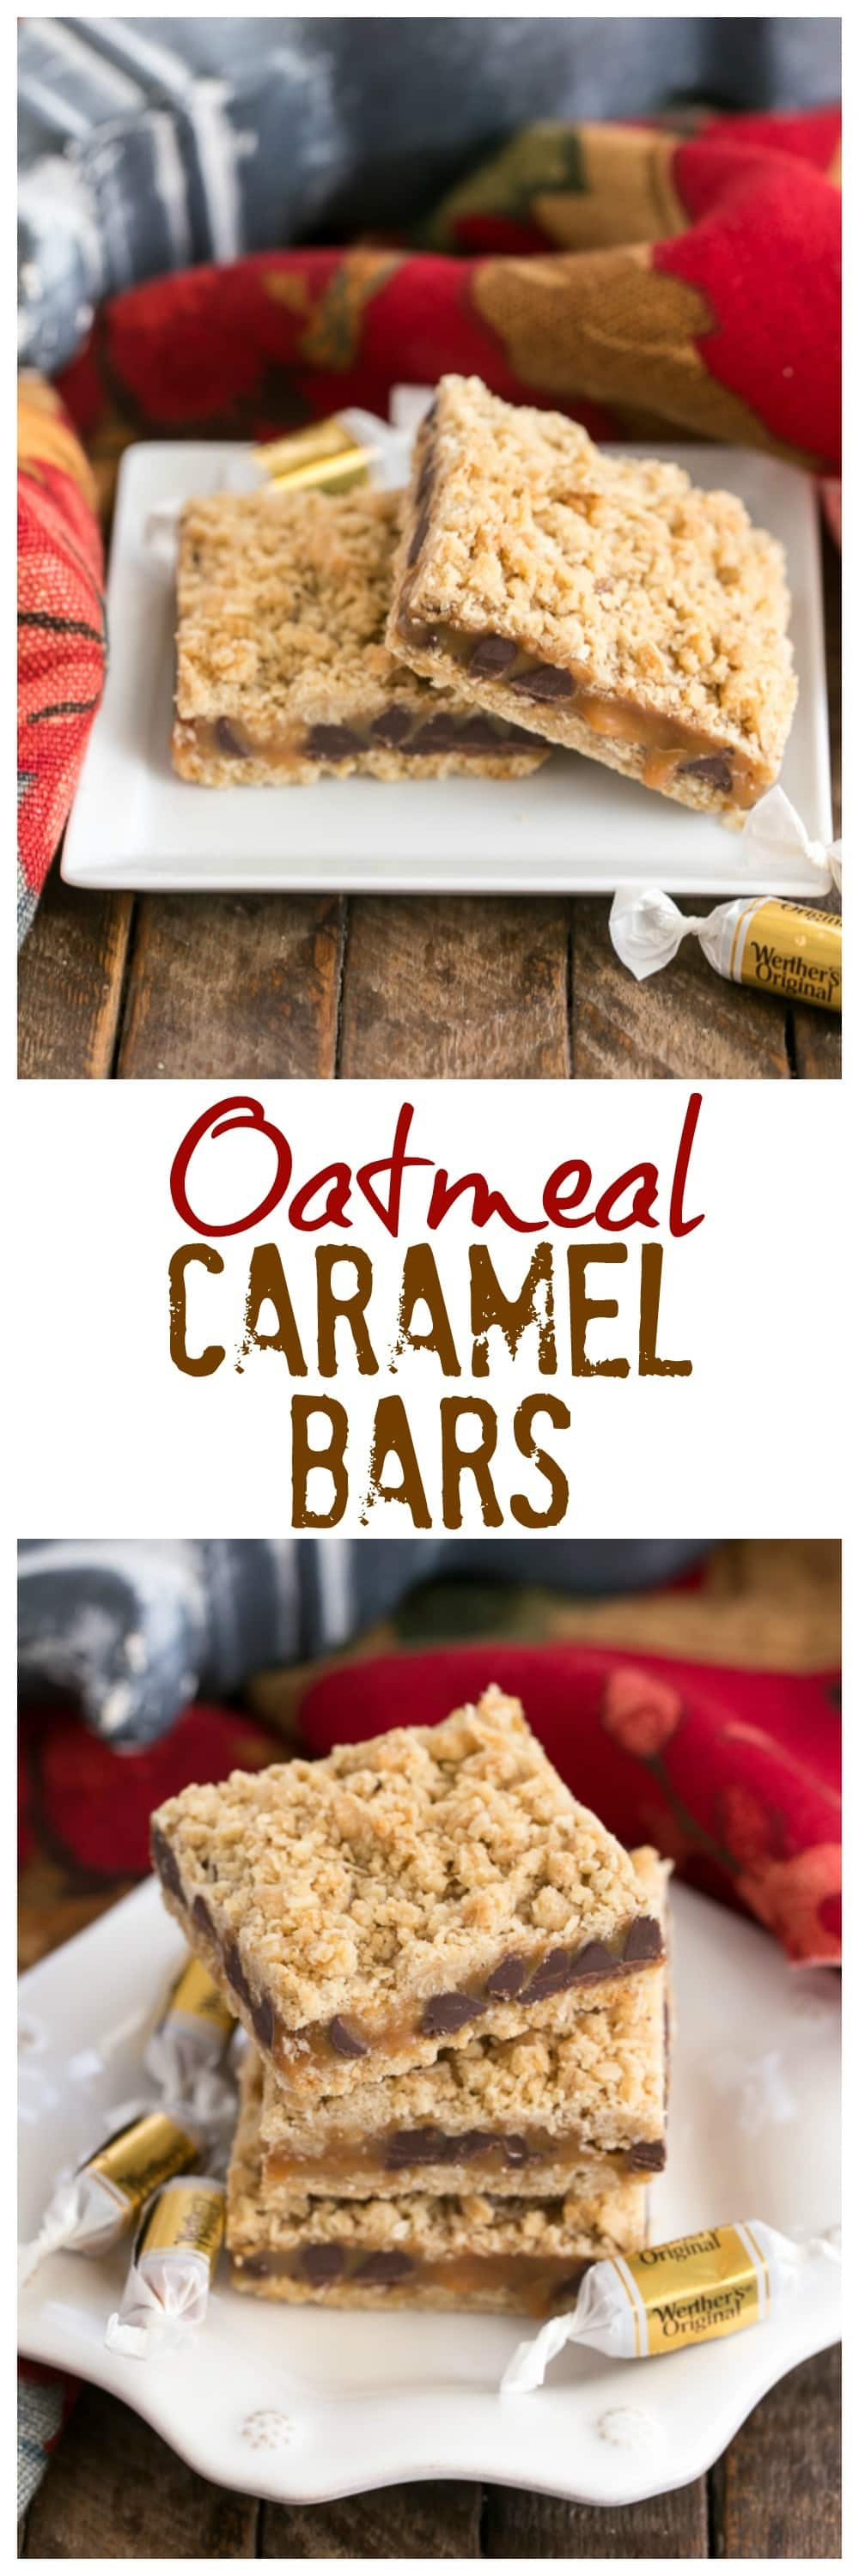 OatmealCaramel Barshave an oat crust and oat streusel sandwiching a gooey layer of both caramel and chocolate. This easy oat bars recipe with caramel makes the perfect dessert for any occasion! #caramel #dessert #oatmeal